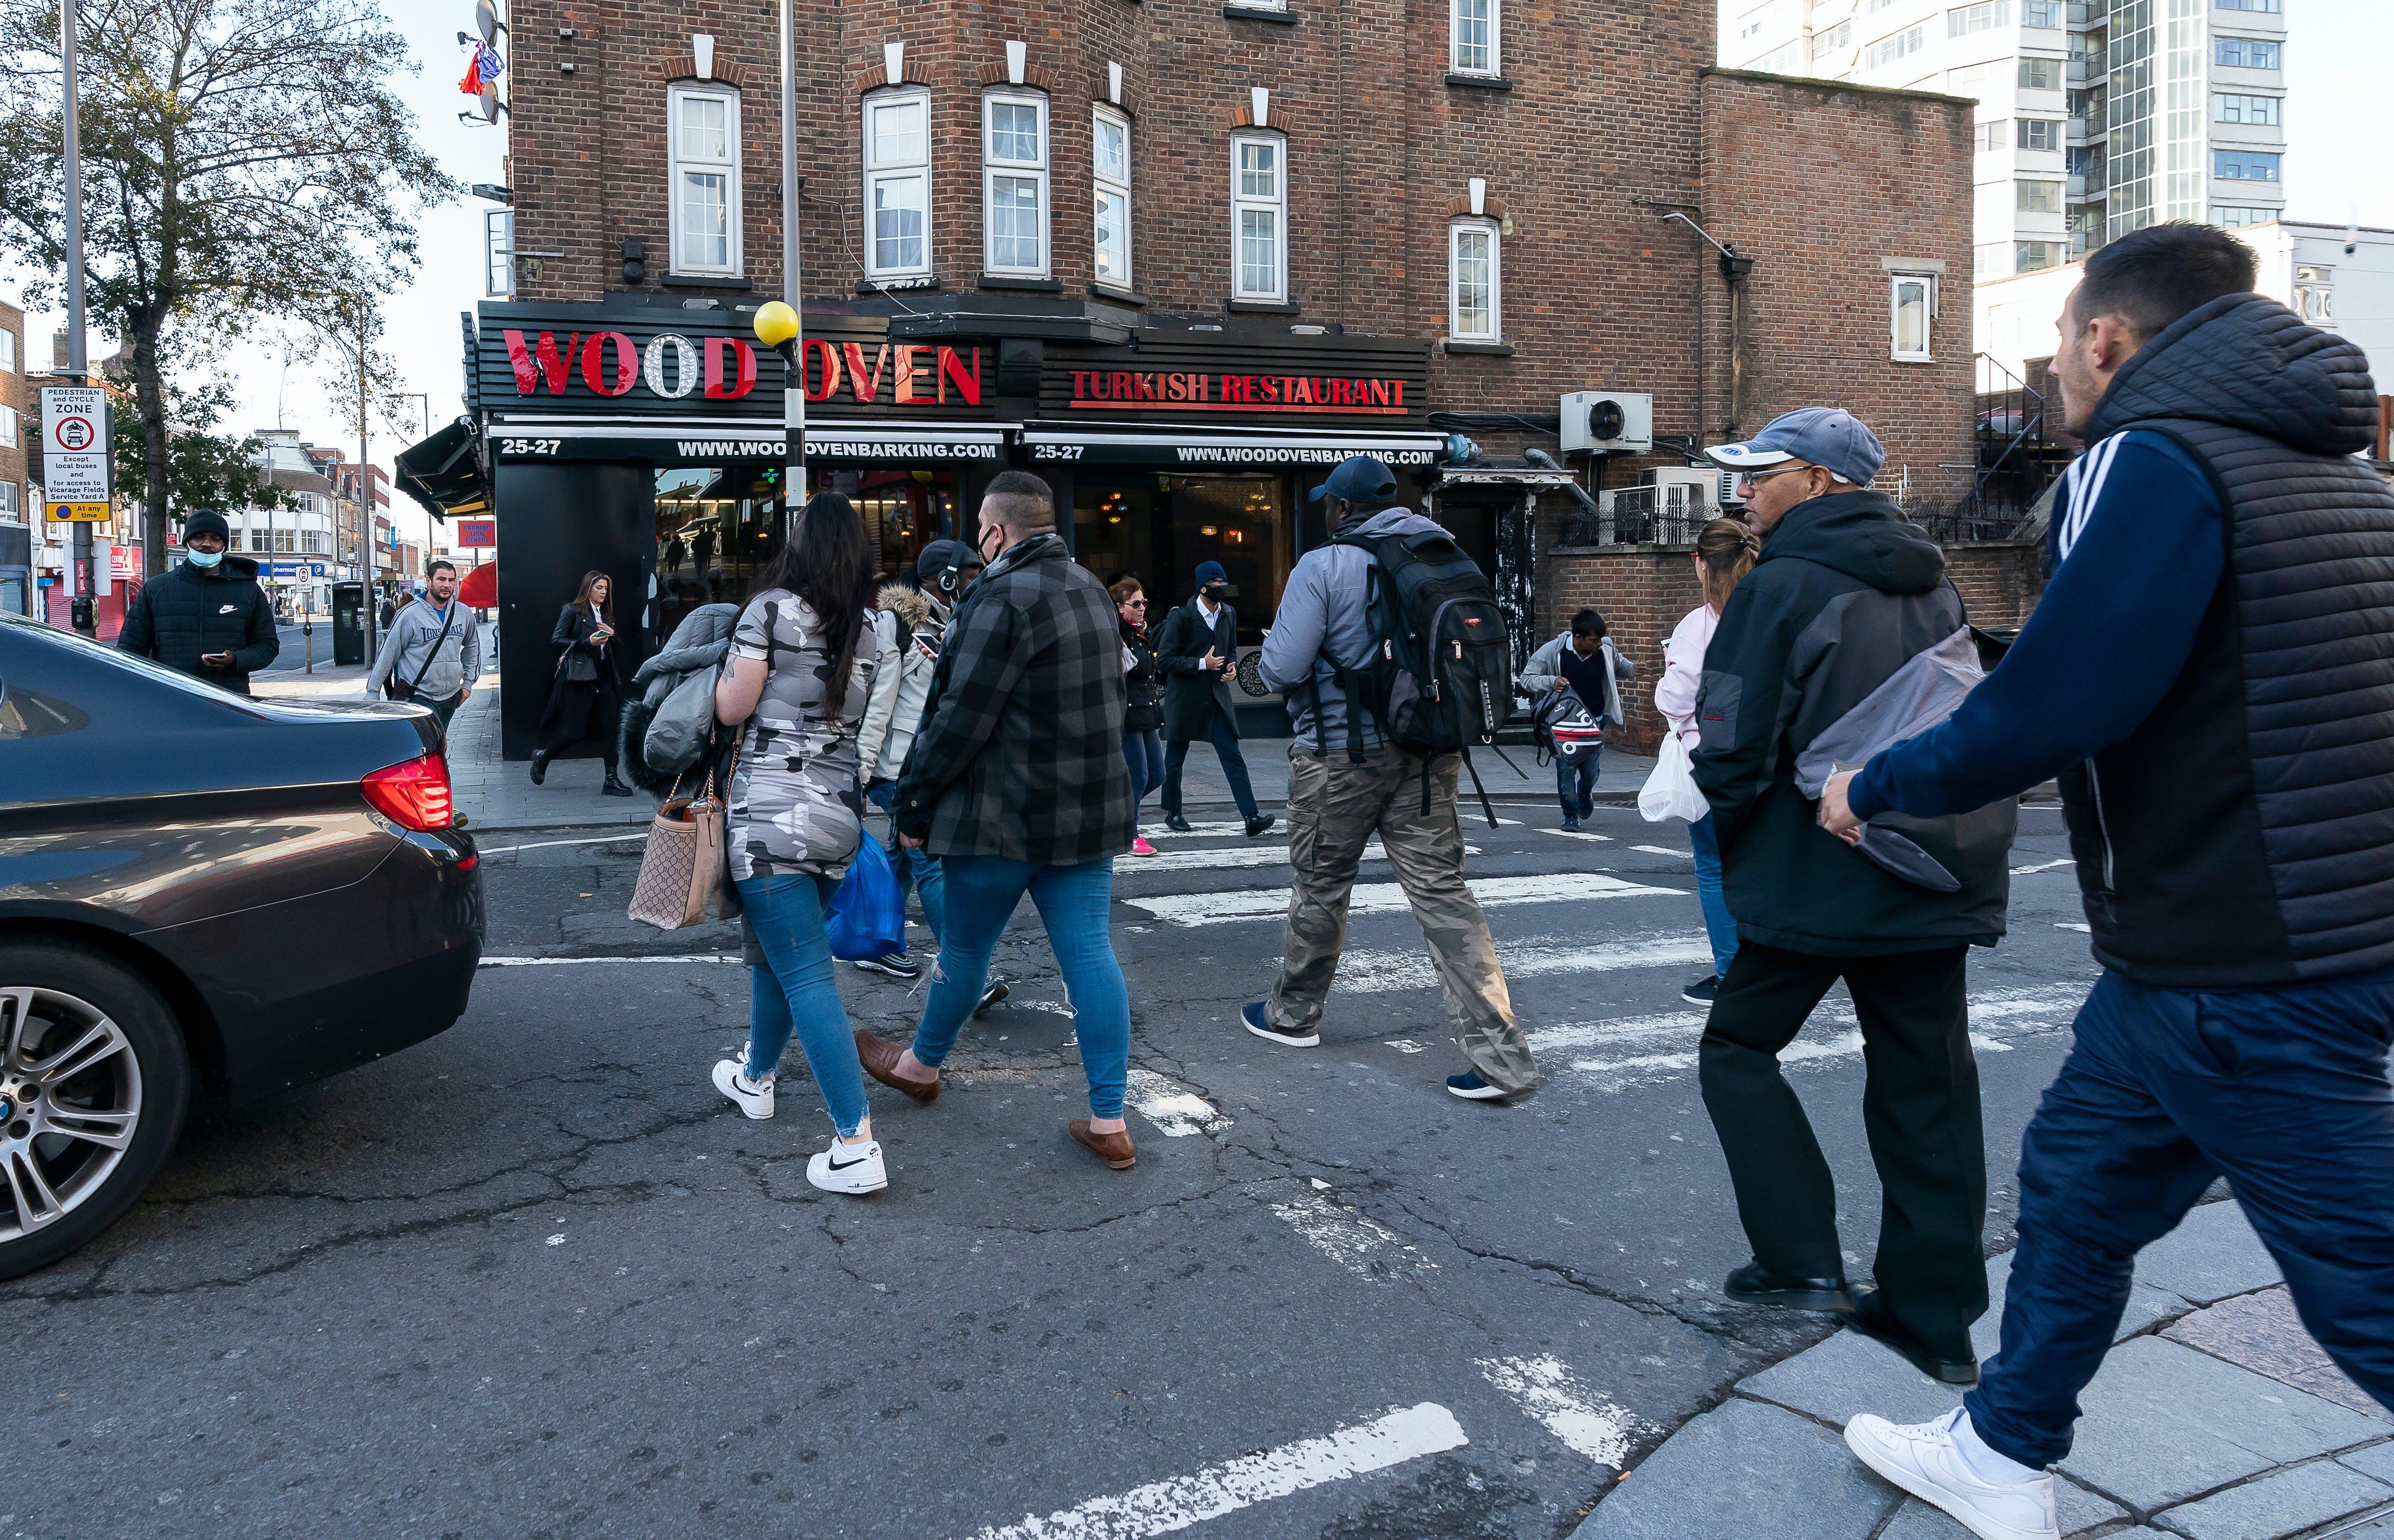 The zebra crossing is busy, but often difficult to use